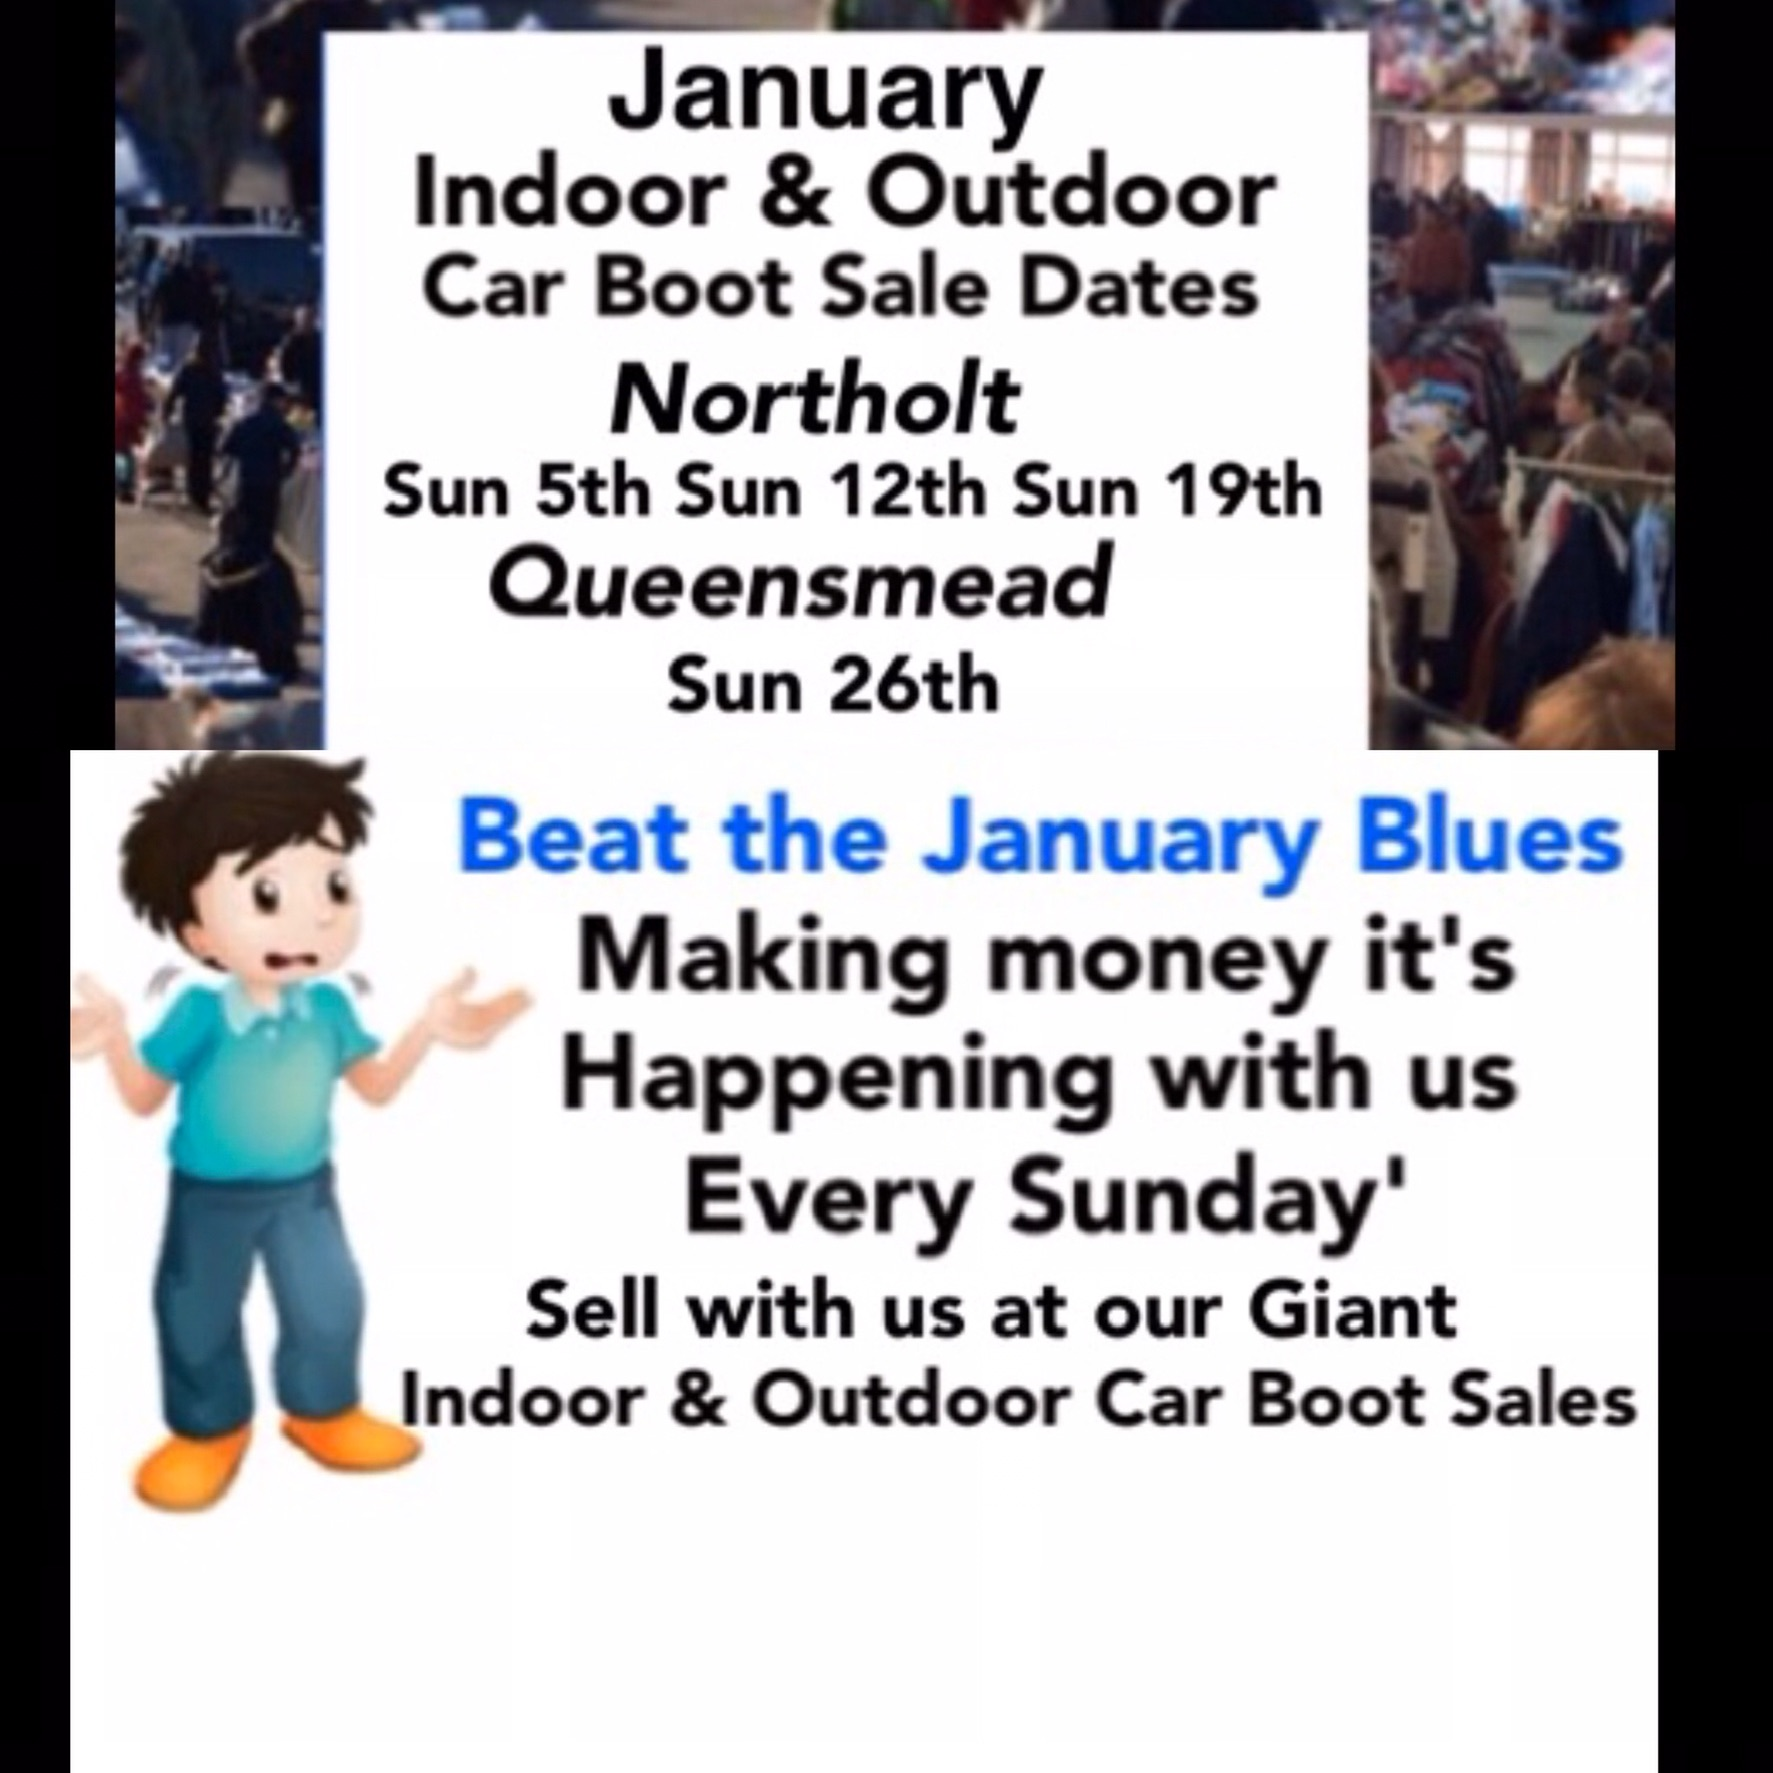 Northolt Giant Indoor & Outdoor Car Boot Sale